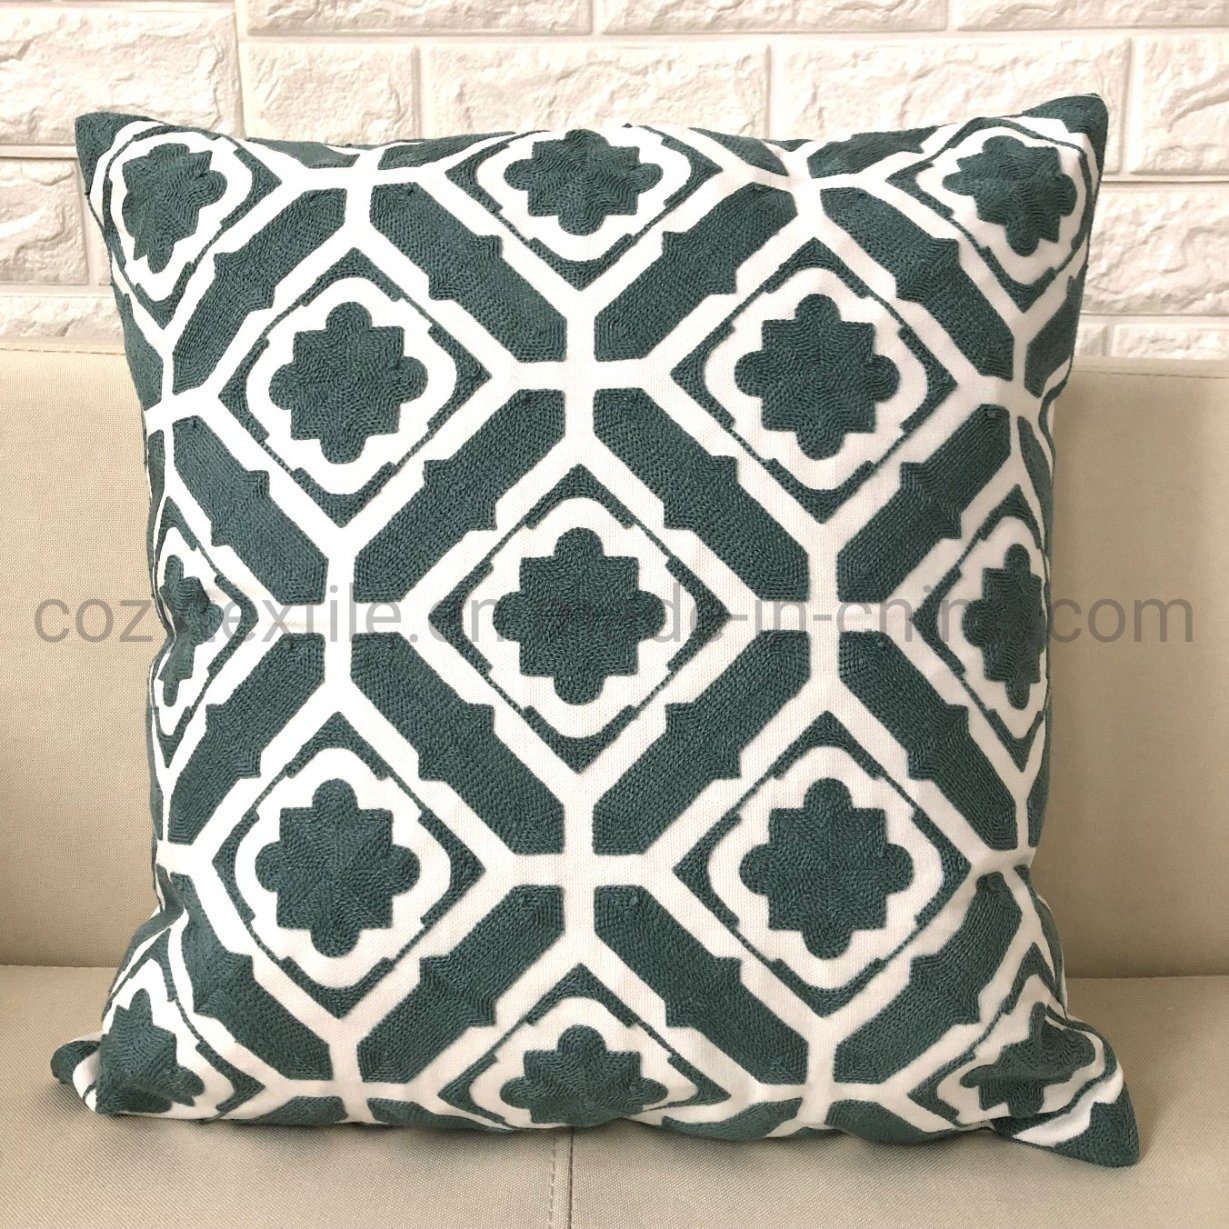 China 100 Cotton White Geometric Embroidery Throw Pillow Covers W O Filling China Pillow Case 45x45cm And Cushion Cover For Sofa Price